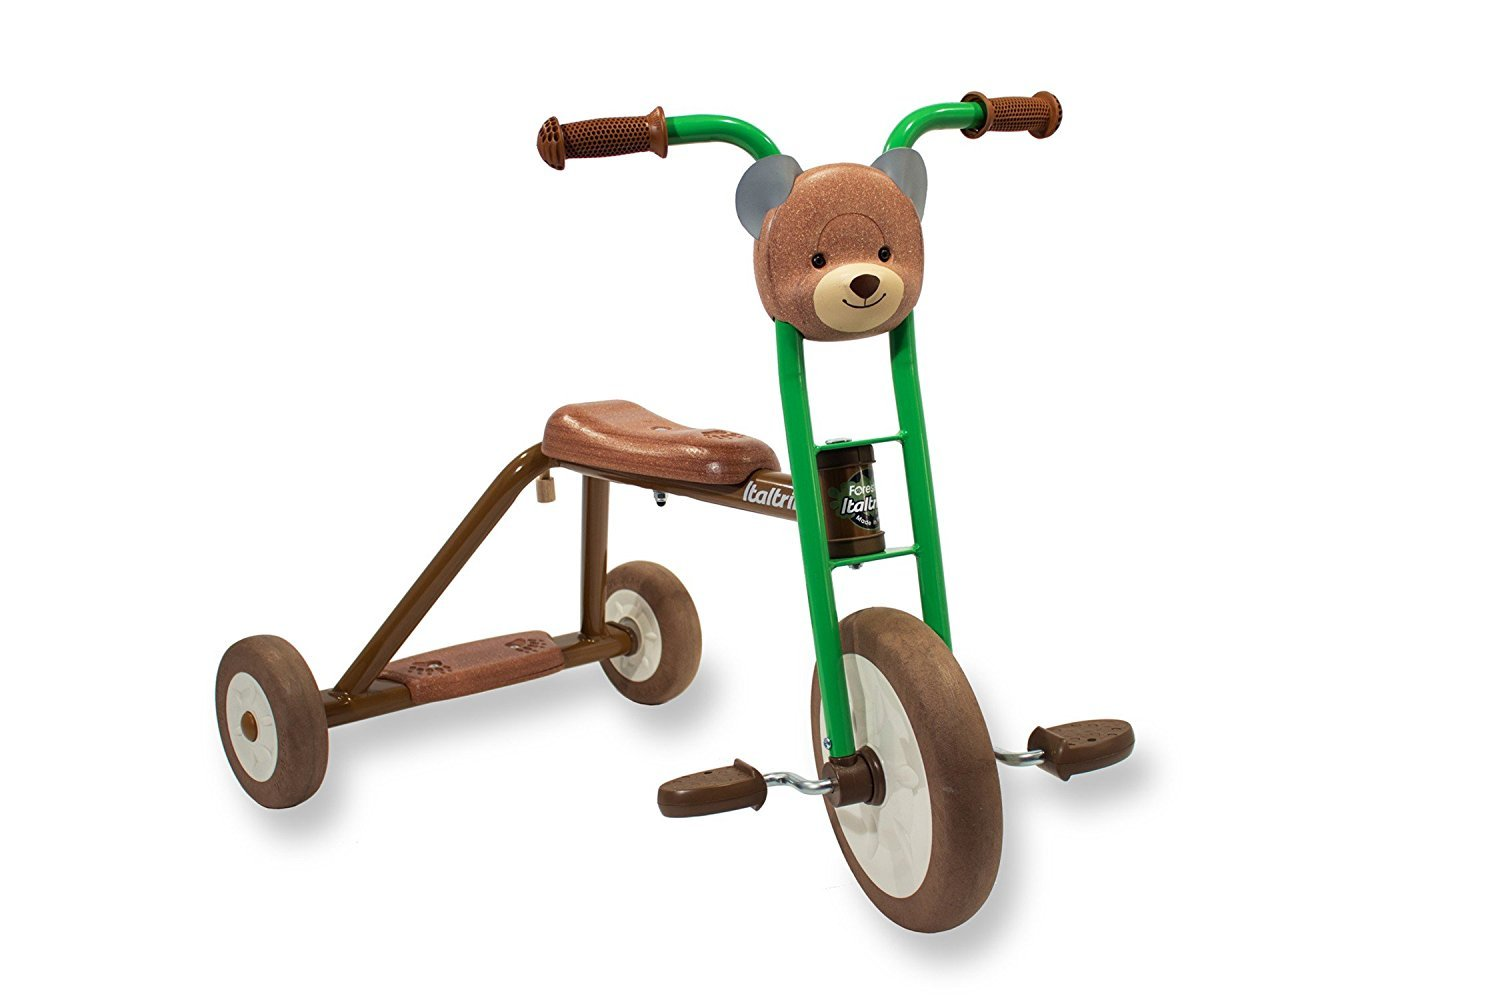 Italtrike Forester Bear Large Forester Large Tricycle 14 [並行輸入品] [並行輸入品] B074TK5FF1, 大成町:793359c2 --- number-directory.top